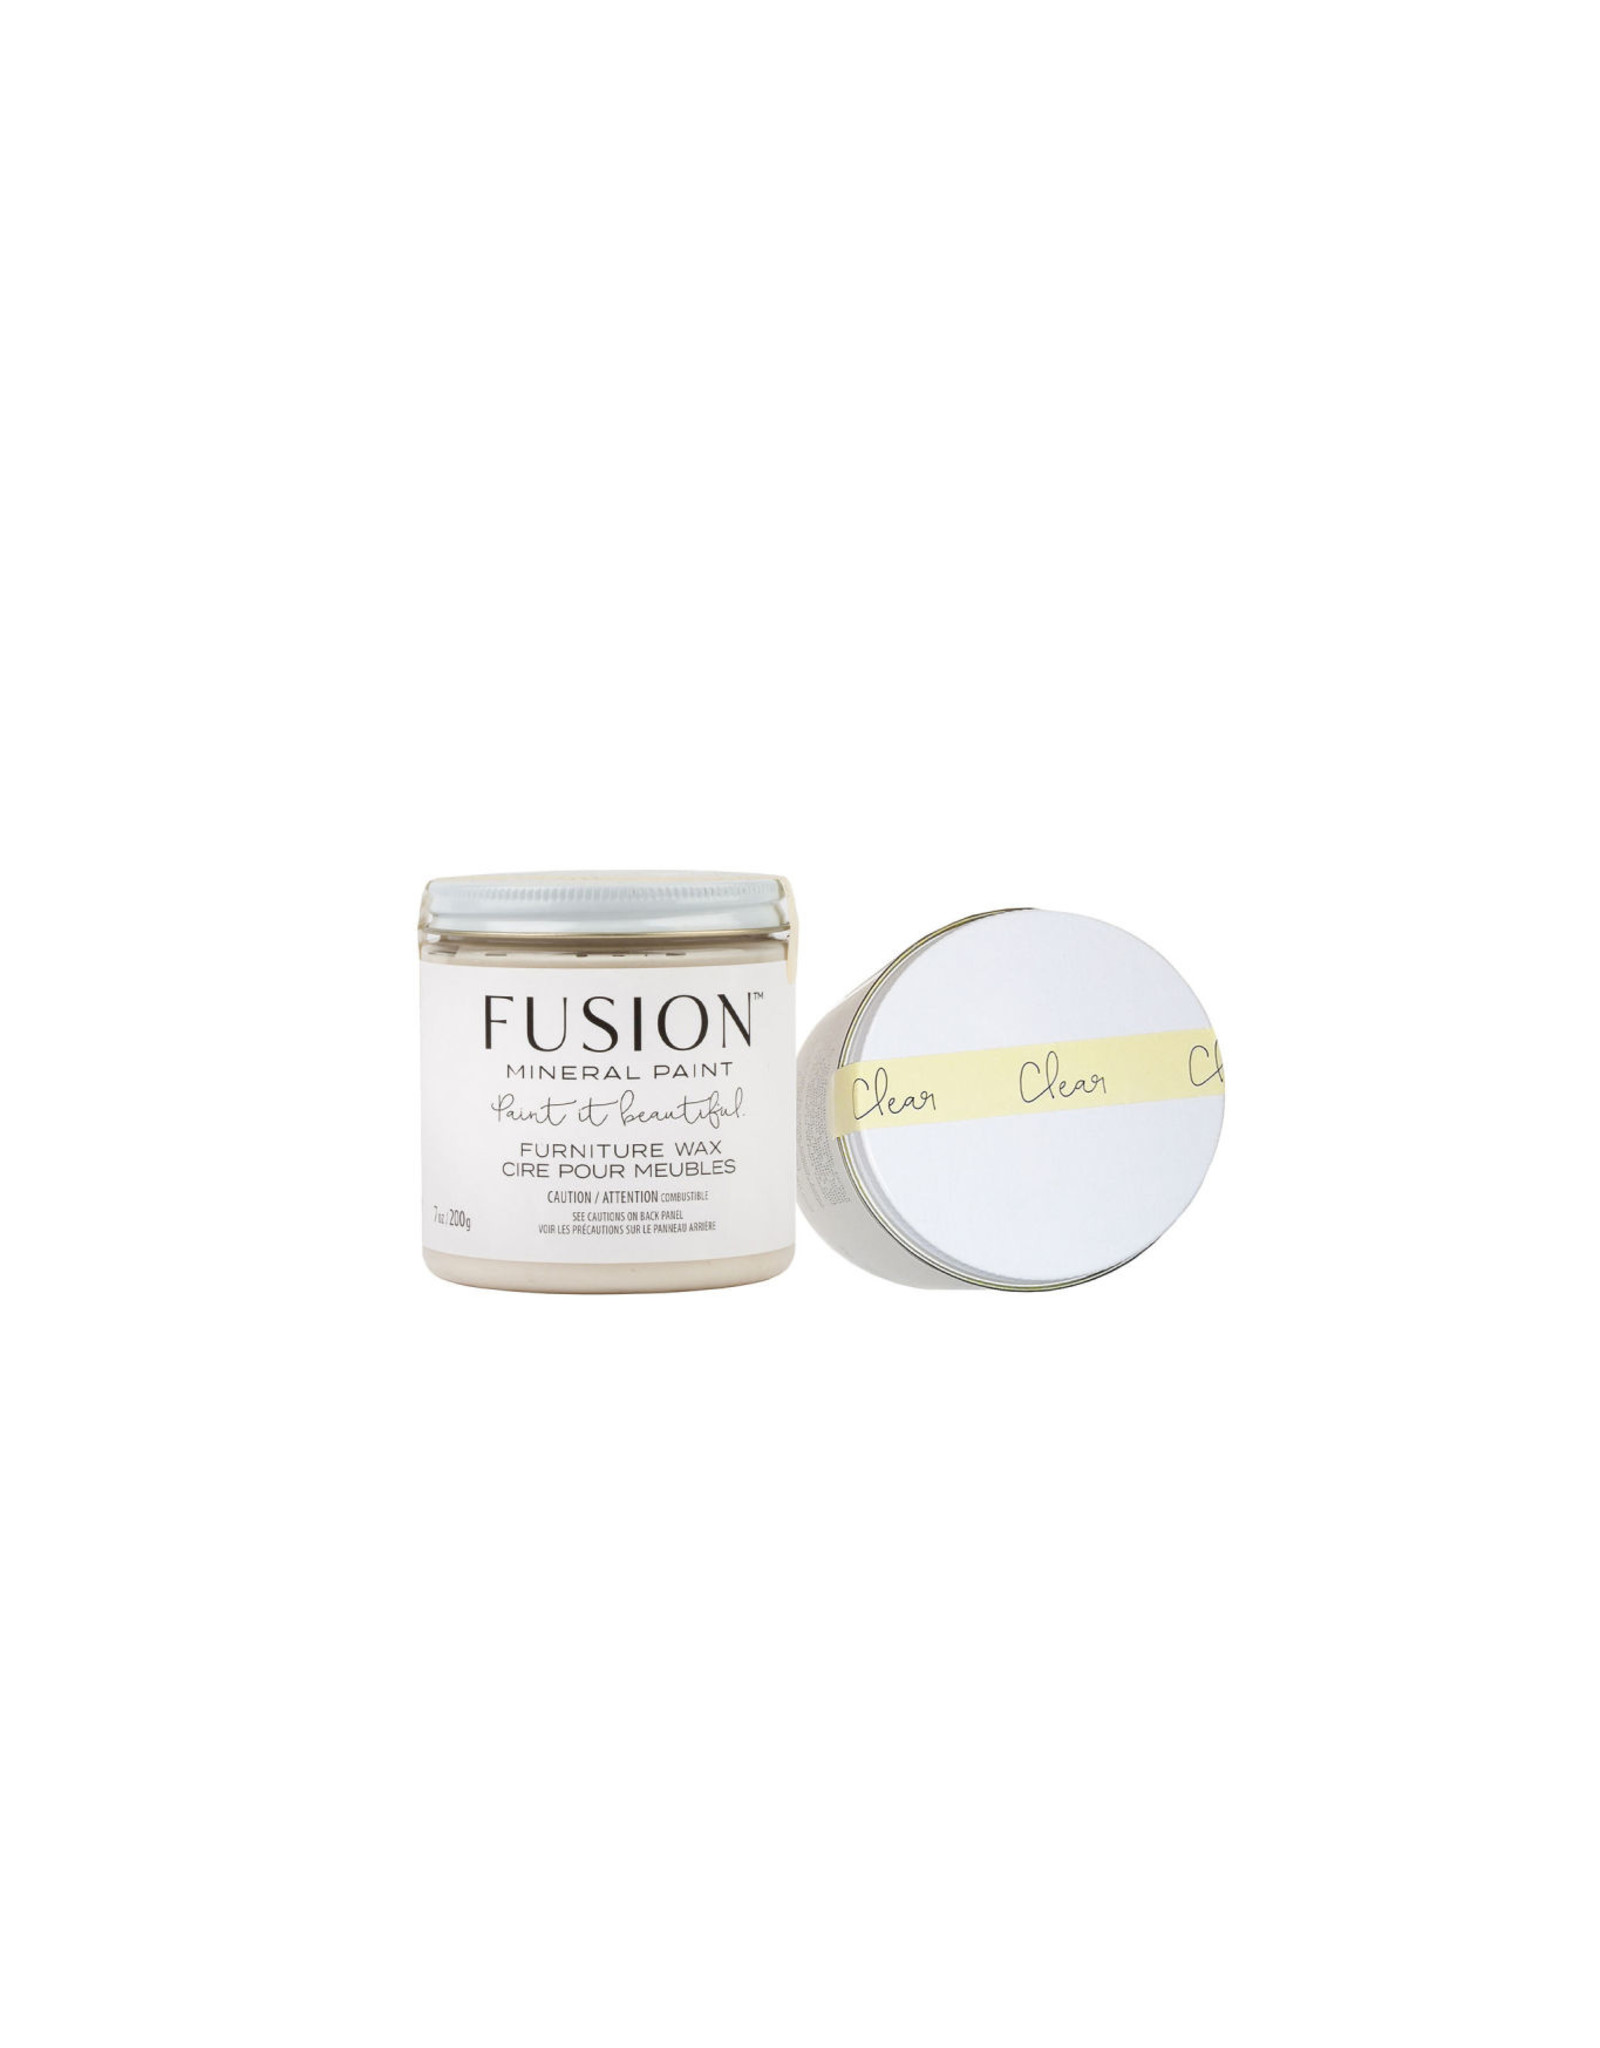 Fusion Mineral Paint Furniture Wax 200g Clear